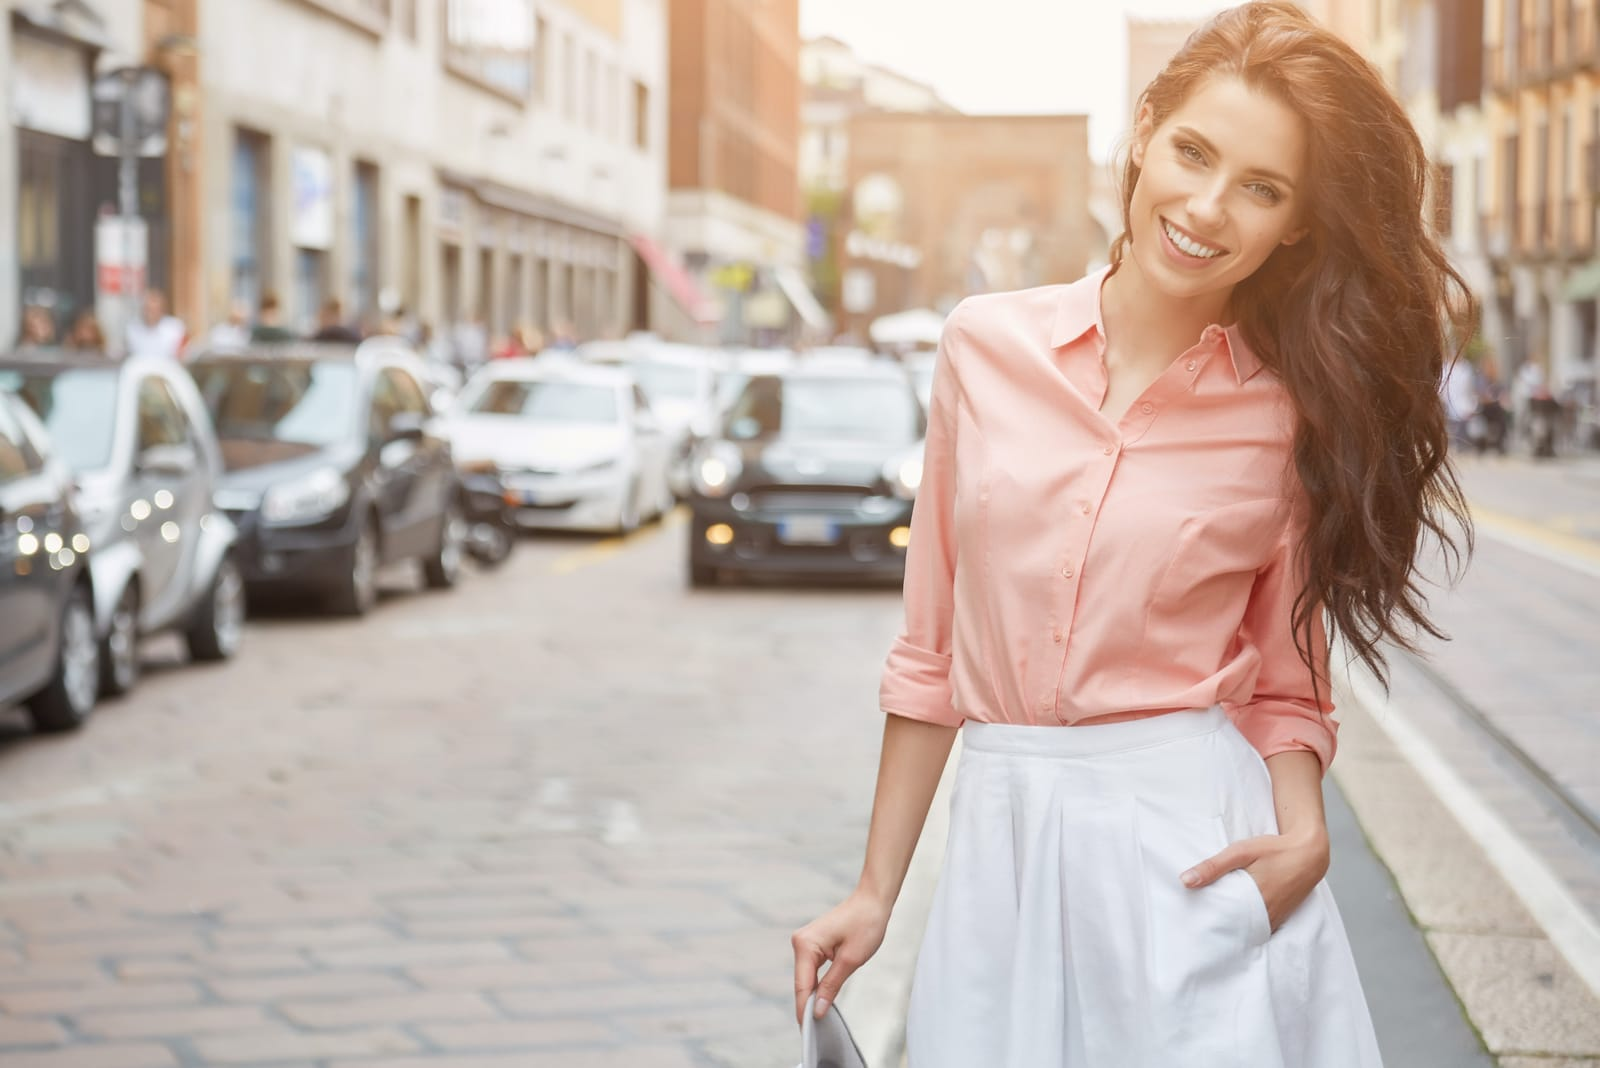 a woman with long brown hair stands in the street and laughs